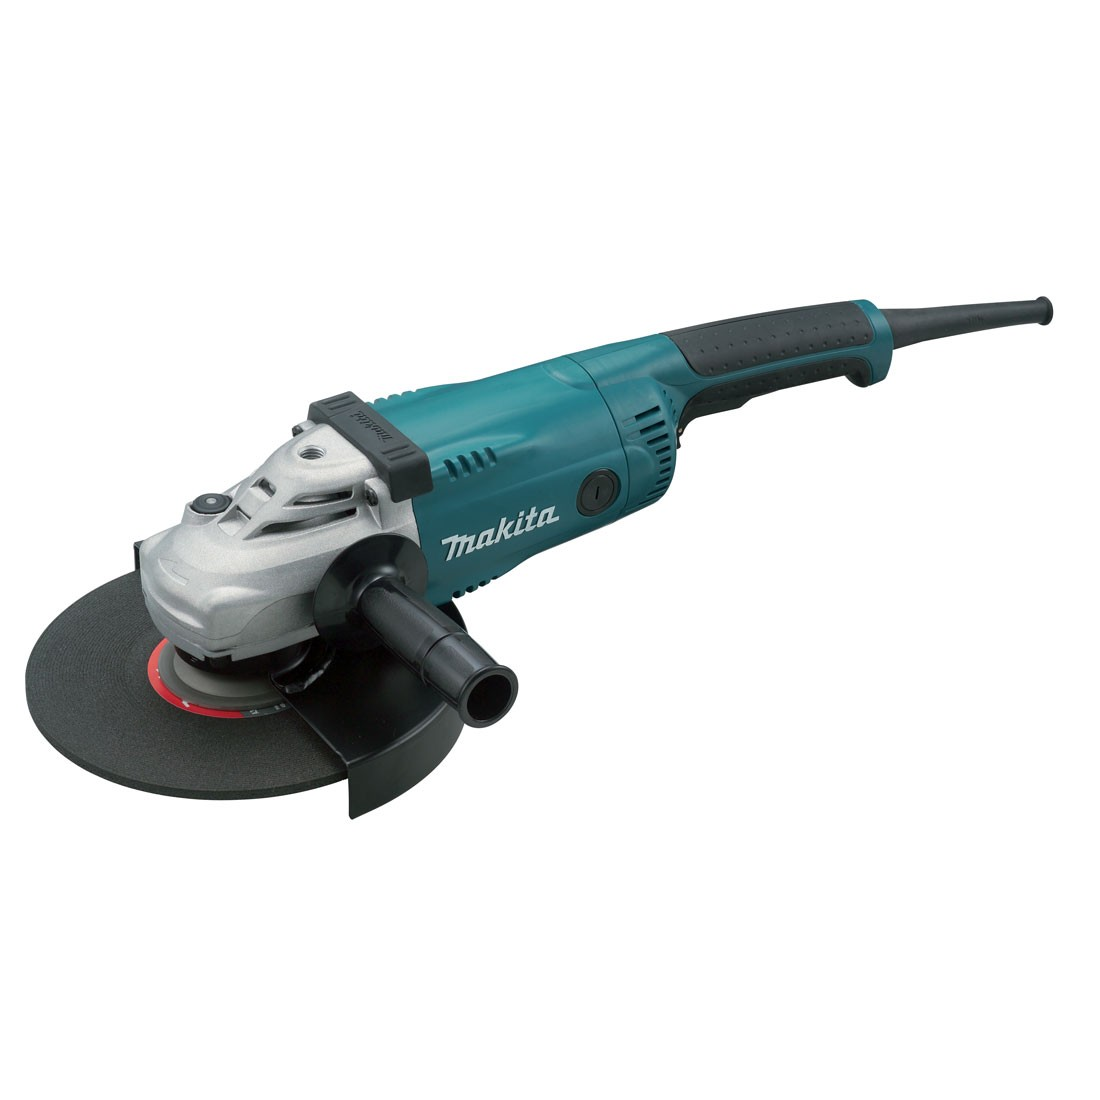 Makita GA9020S Angle Grinder 230mm with Soft Start